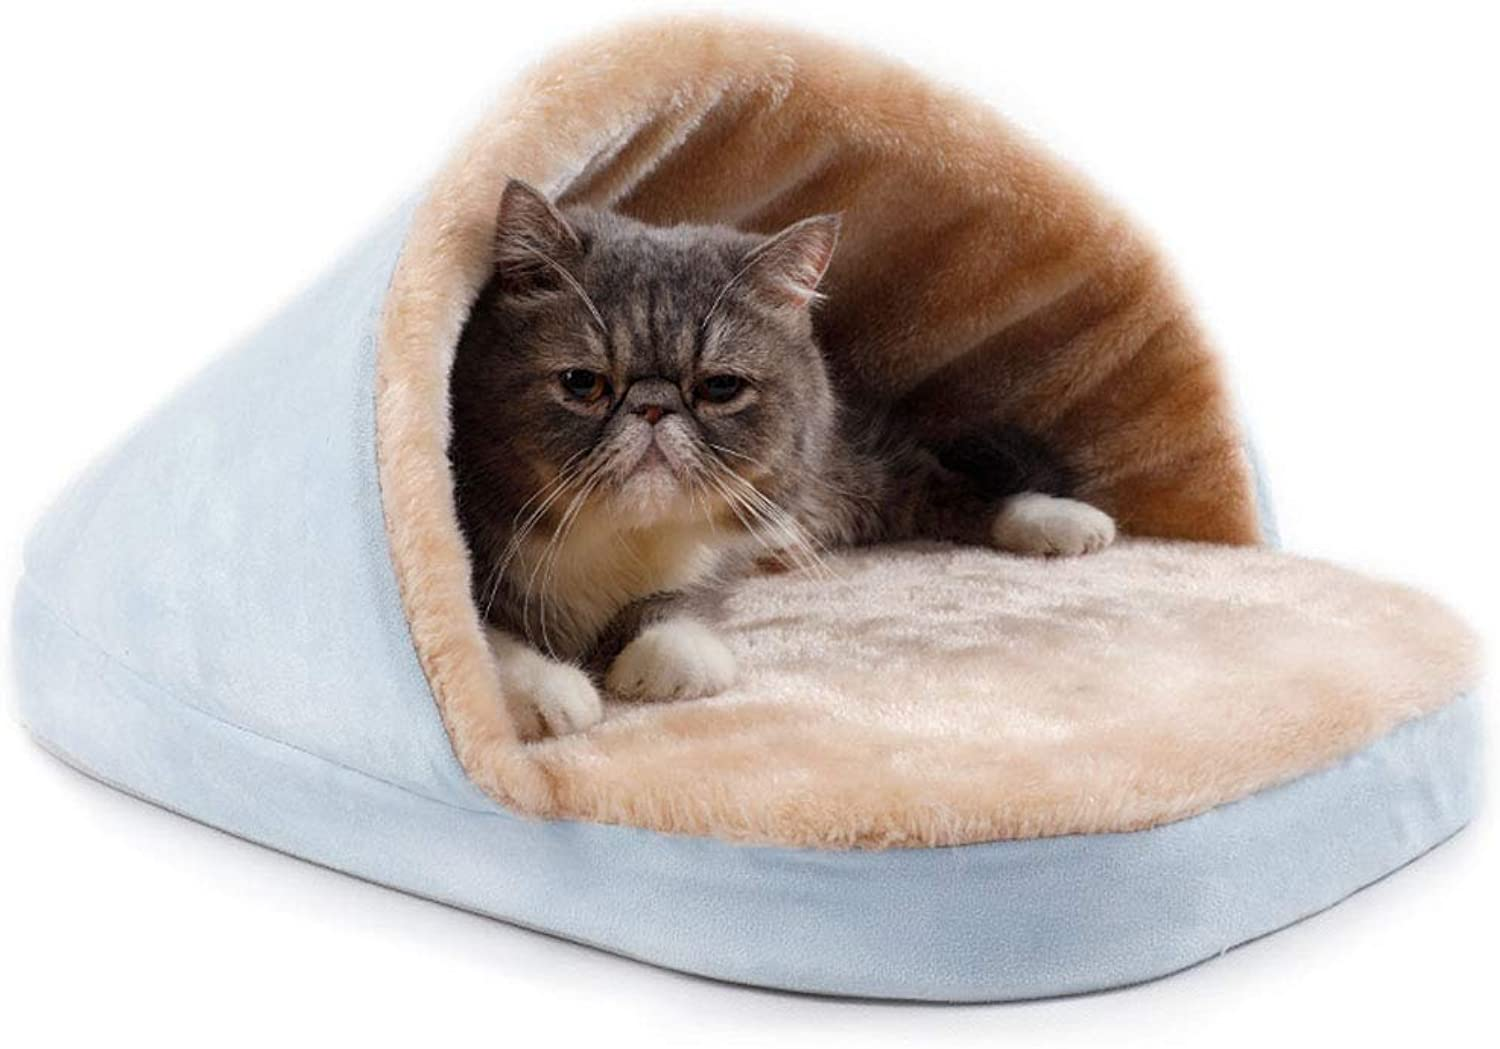 Dog Bed cat mat Plush Pad Soft Interior - Cute Slipper Style Sky bluee - 55x40cm Four Seasons Universal Washable